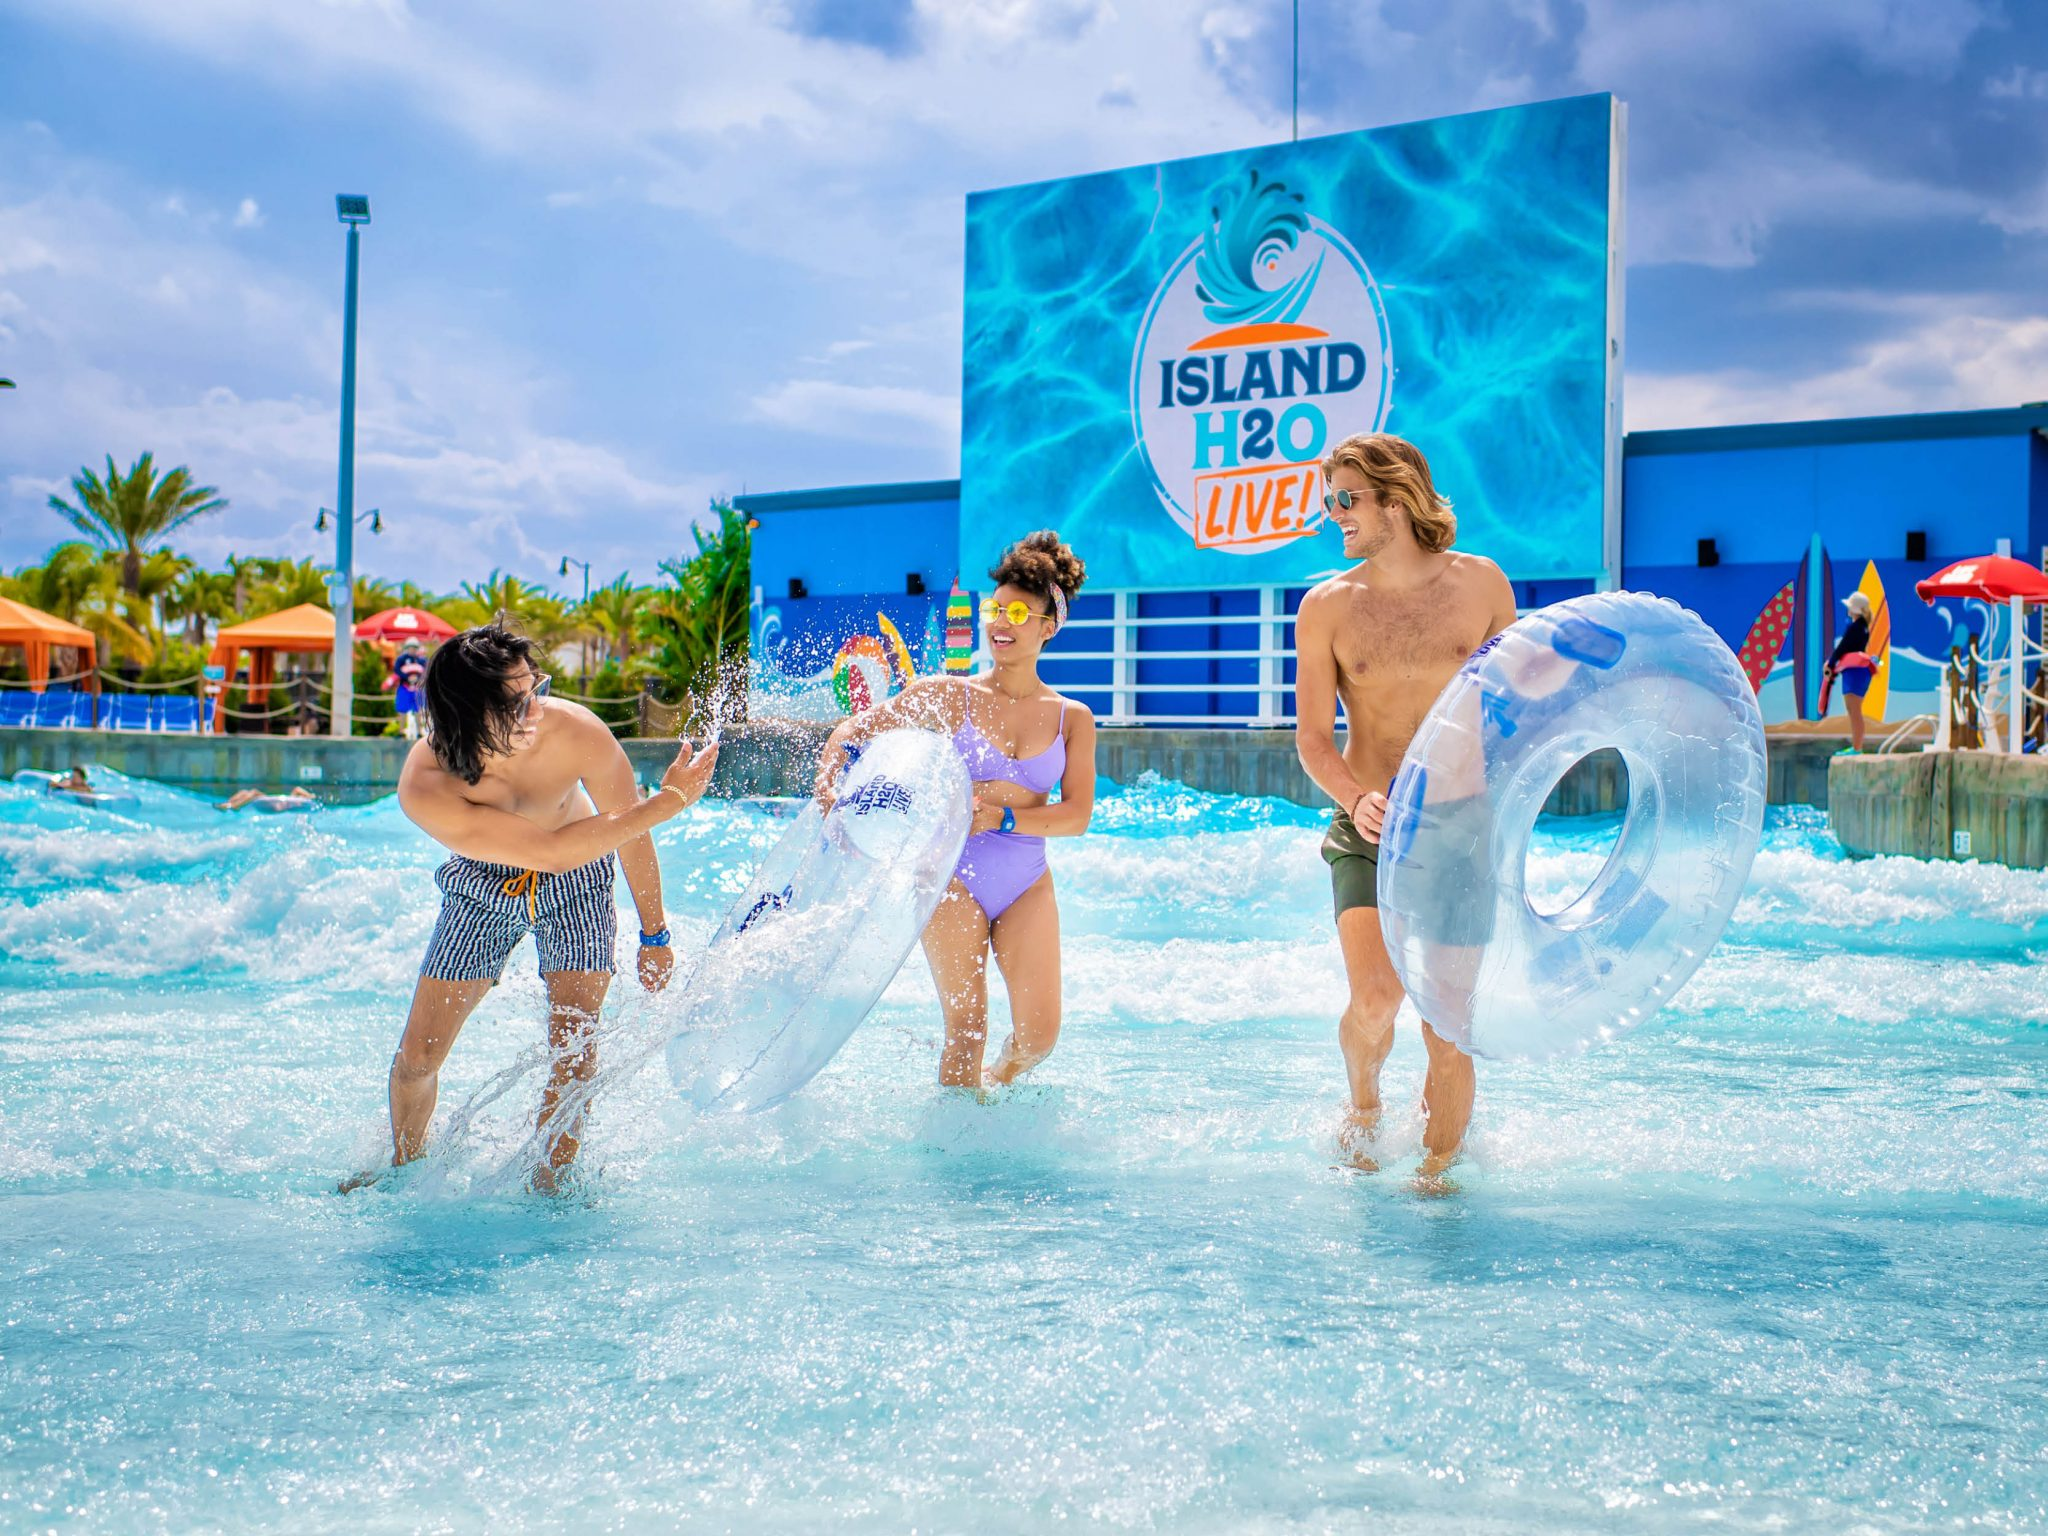 wave pool at island h20 live